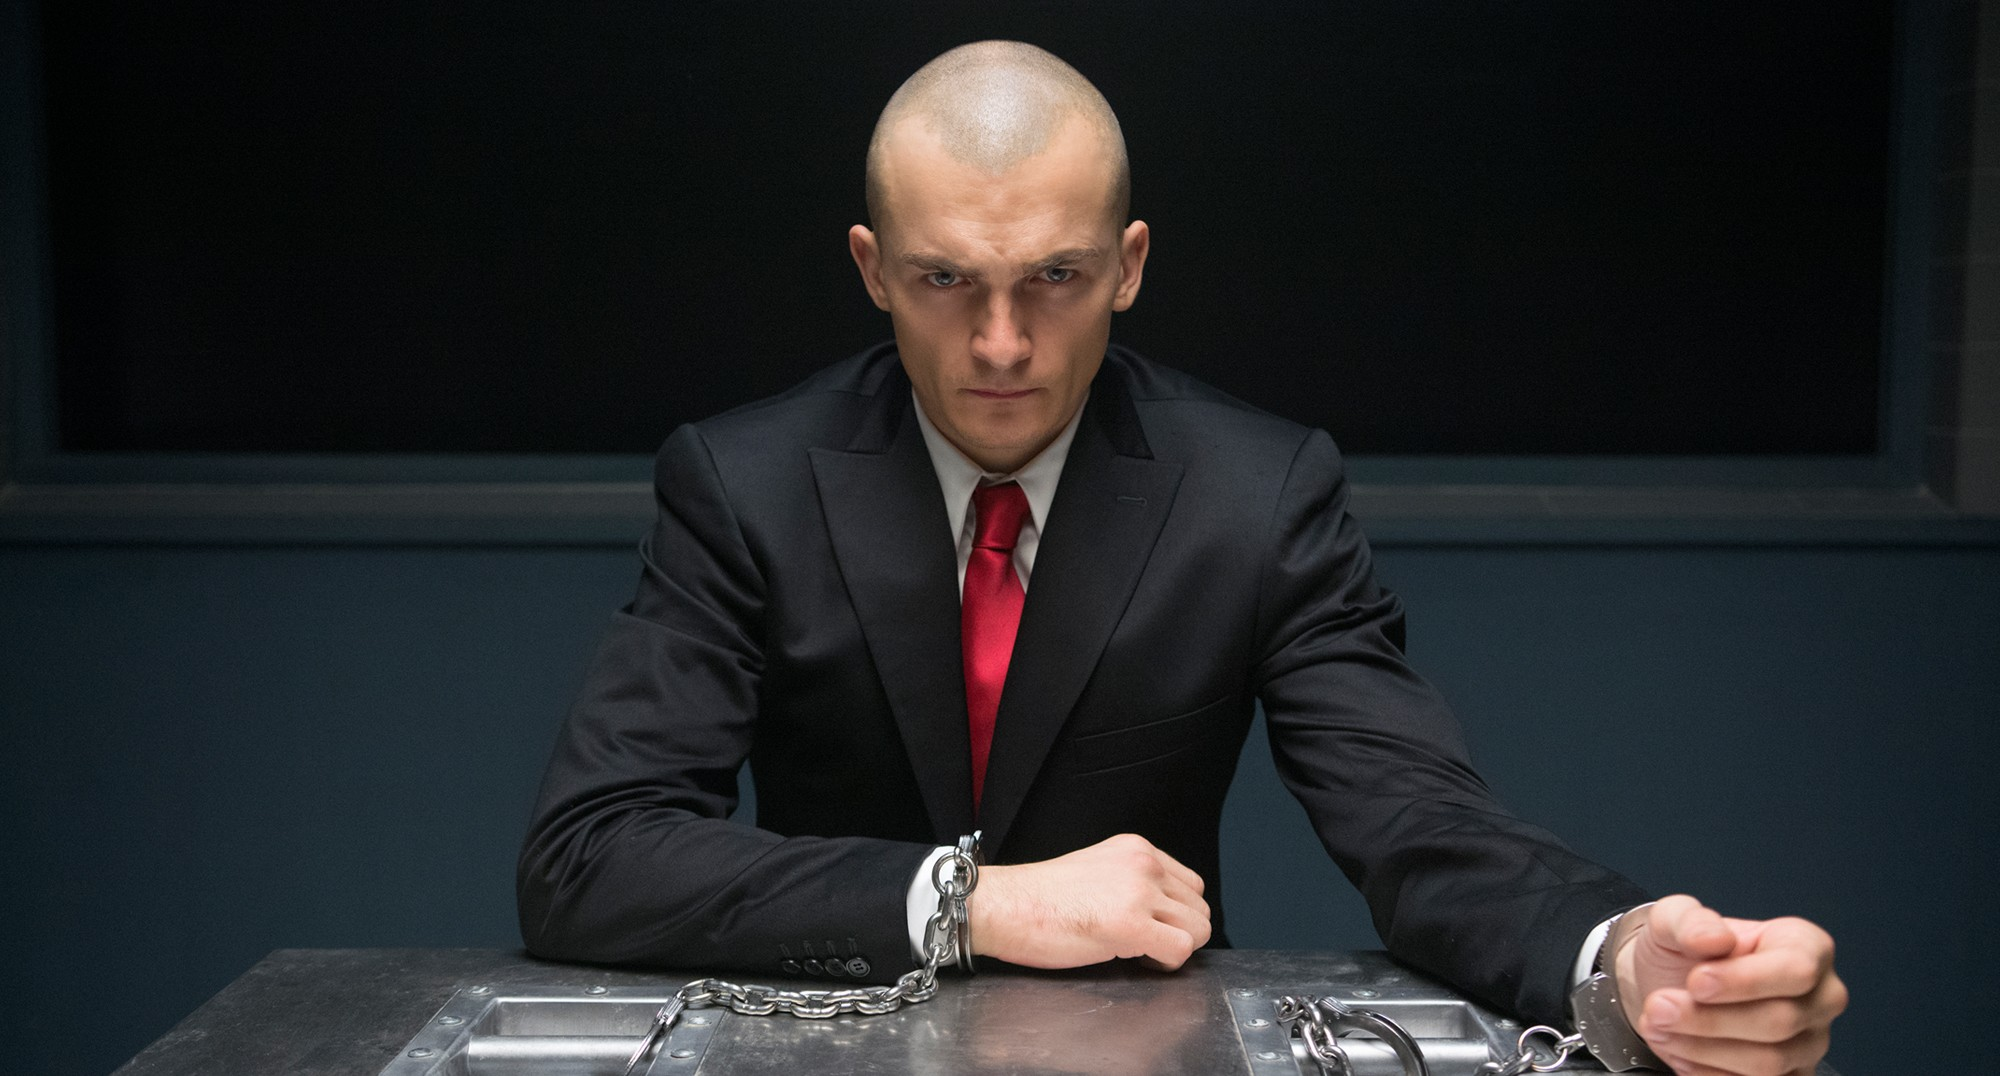 Hitman Agent 47 Avoid It As You Would A Real Hitman The Signal